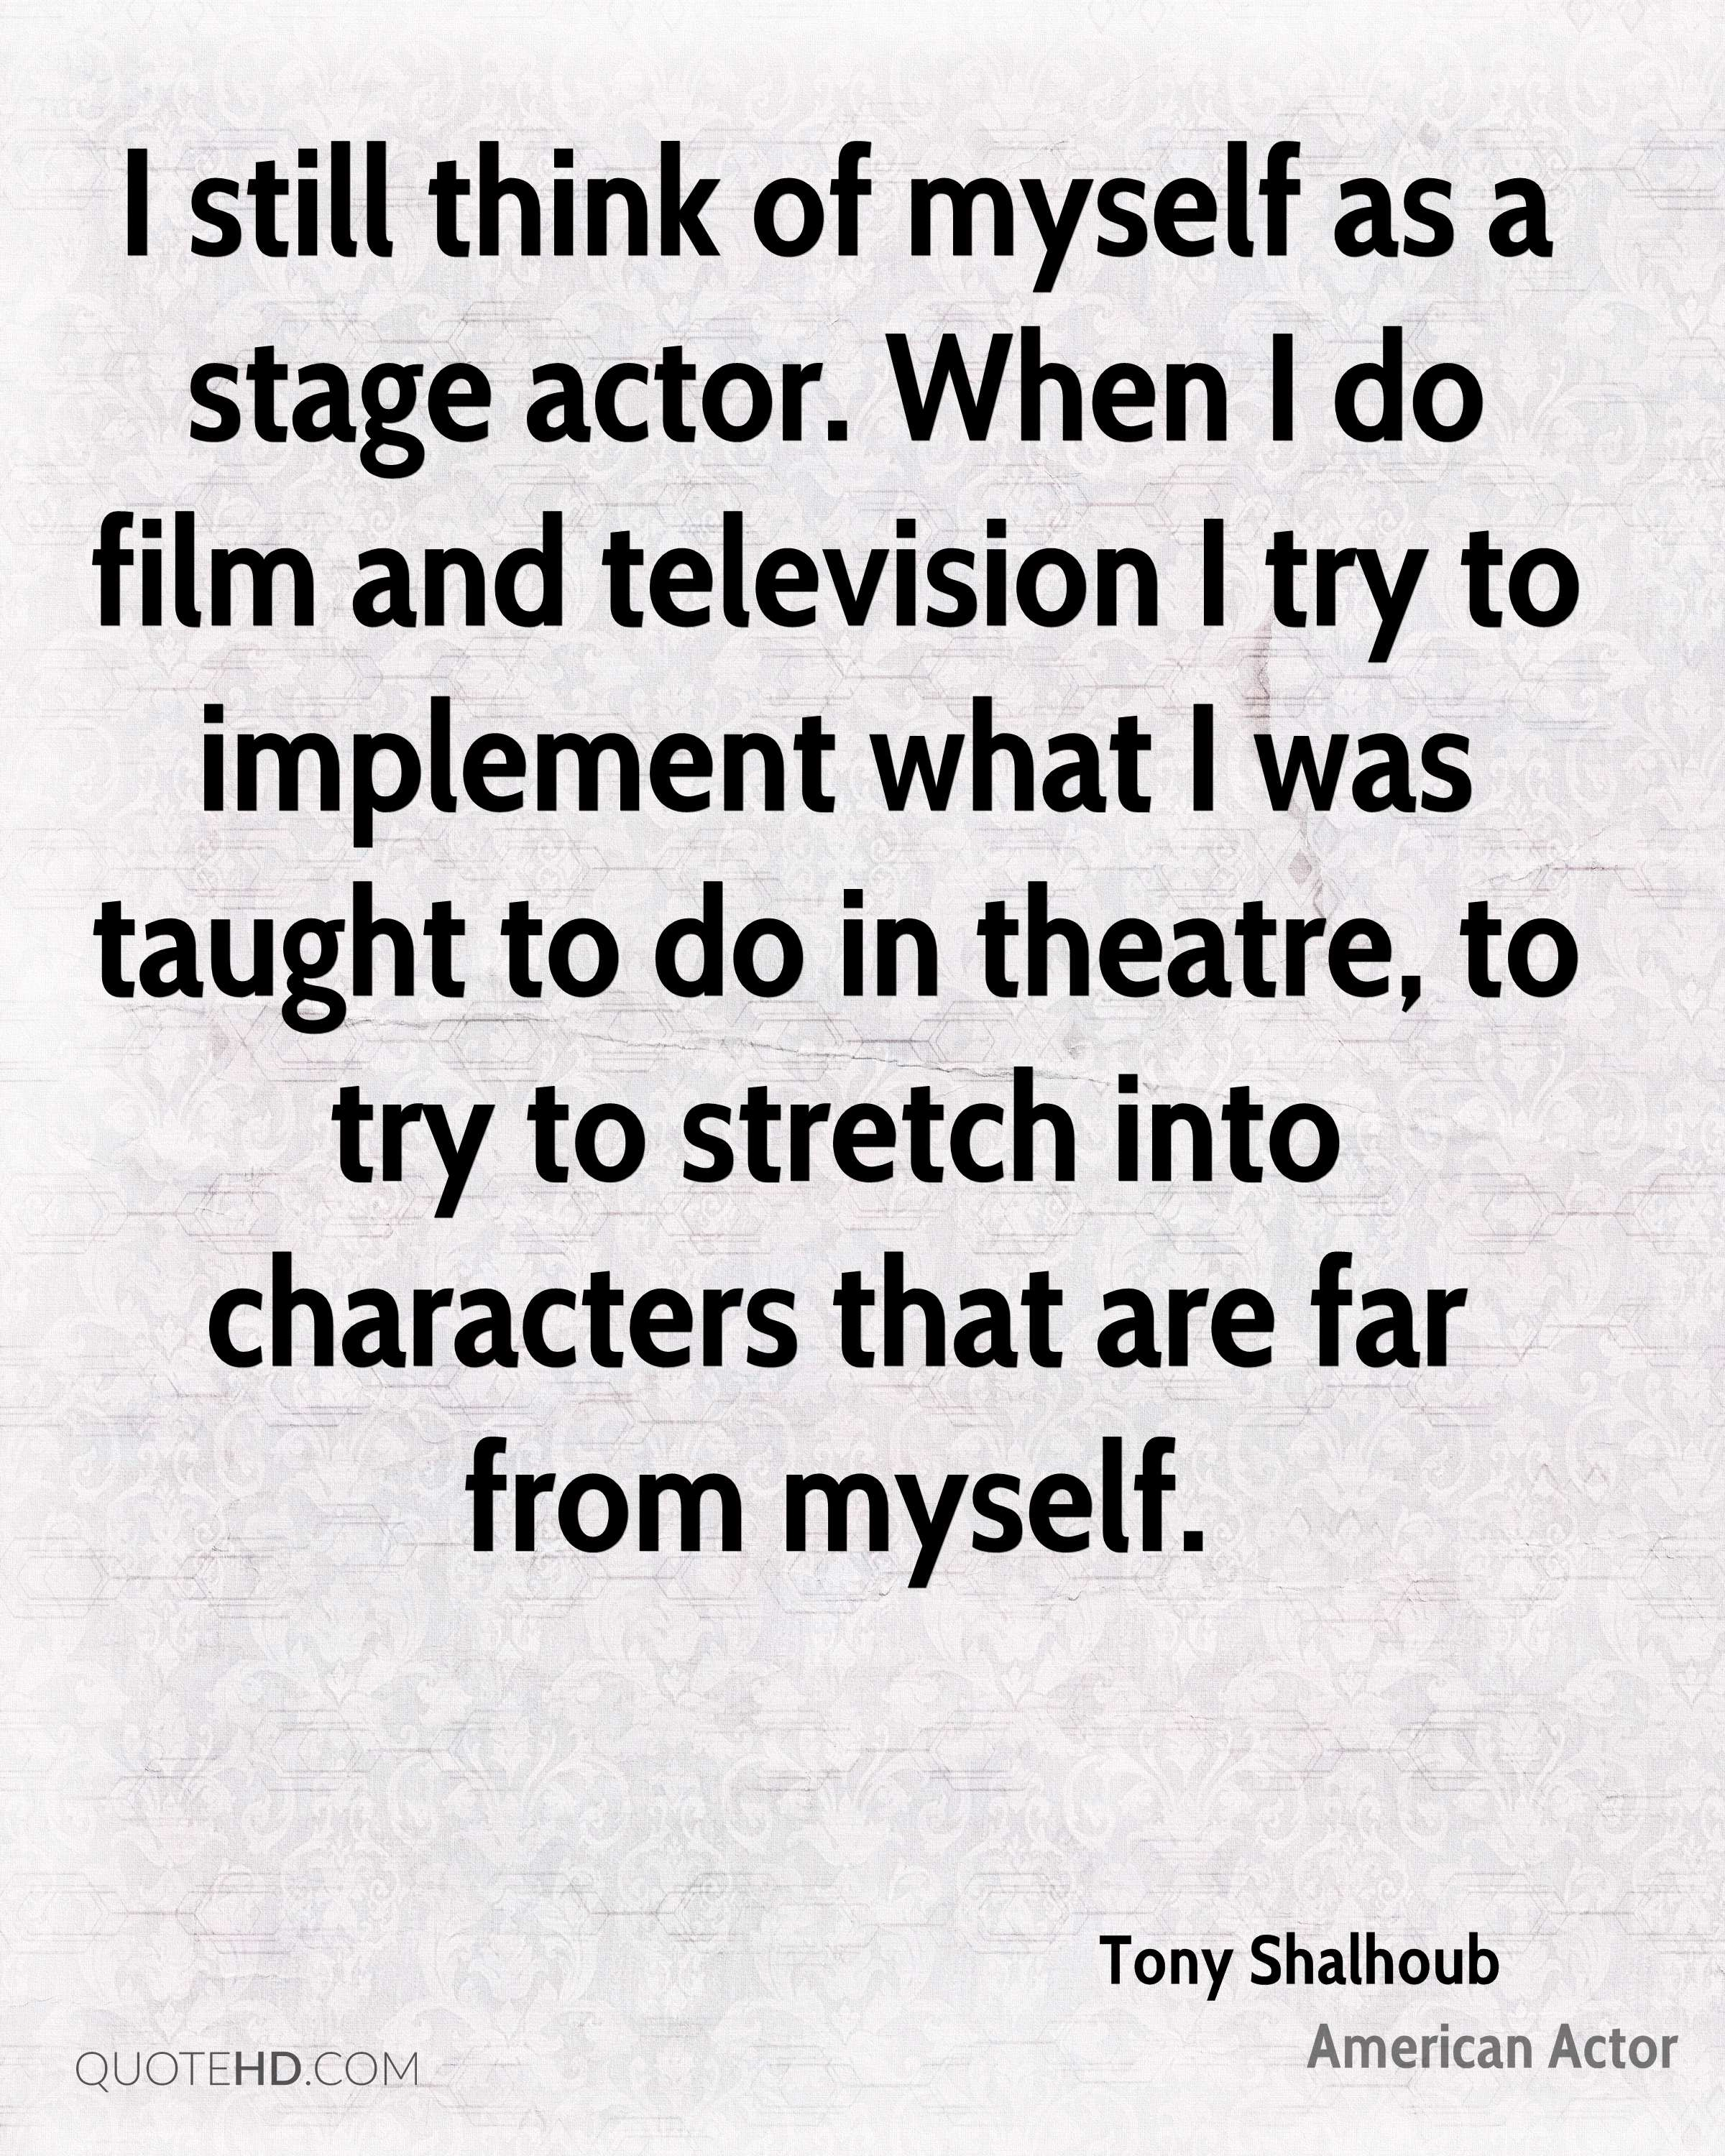 I still think of myself as a stage actor. When I do film and television I try to implement what I was taught to do in theatre, to try to stretch into characters that are far from myself.